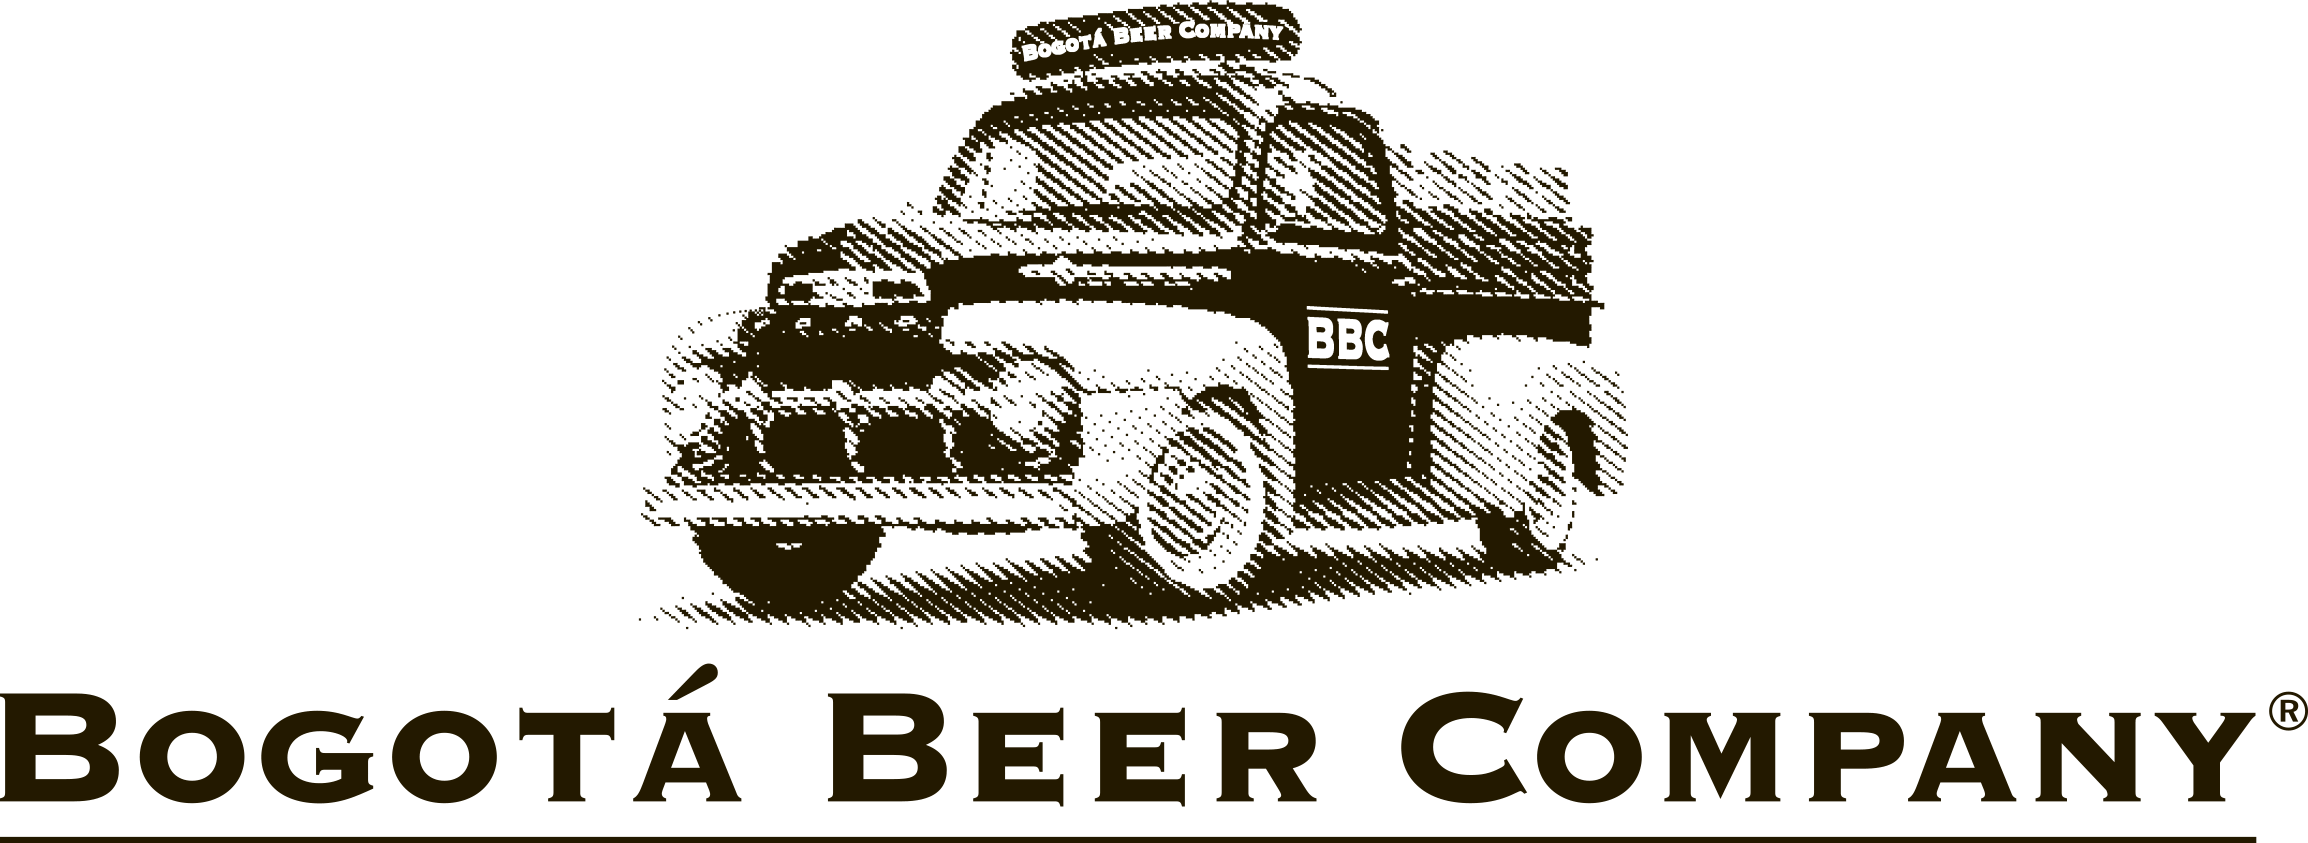 mission vision values of boston beer company Our passion is to quench the thirst of our customers by having them enjoy our high quality products at a great value vision statement in the company mission.